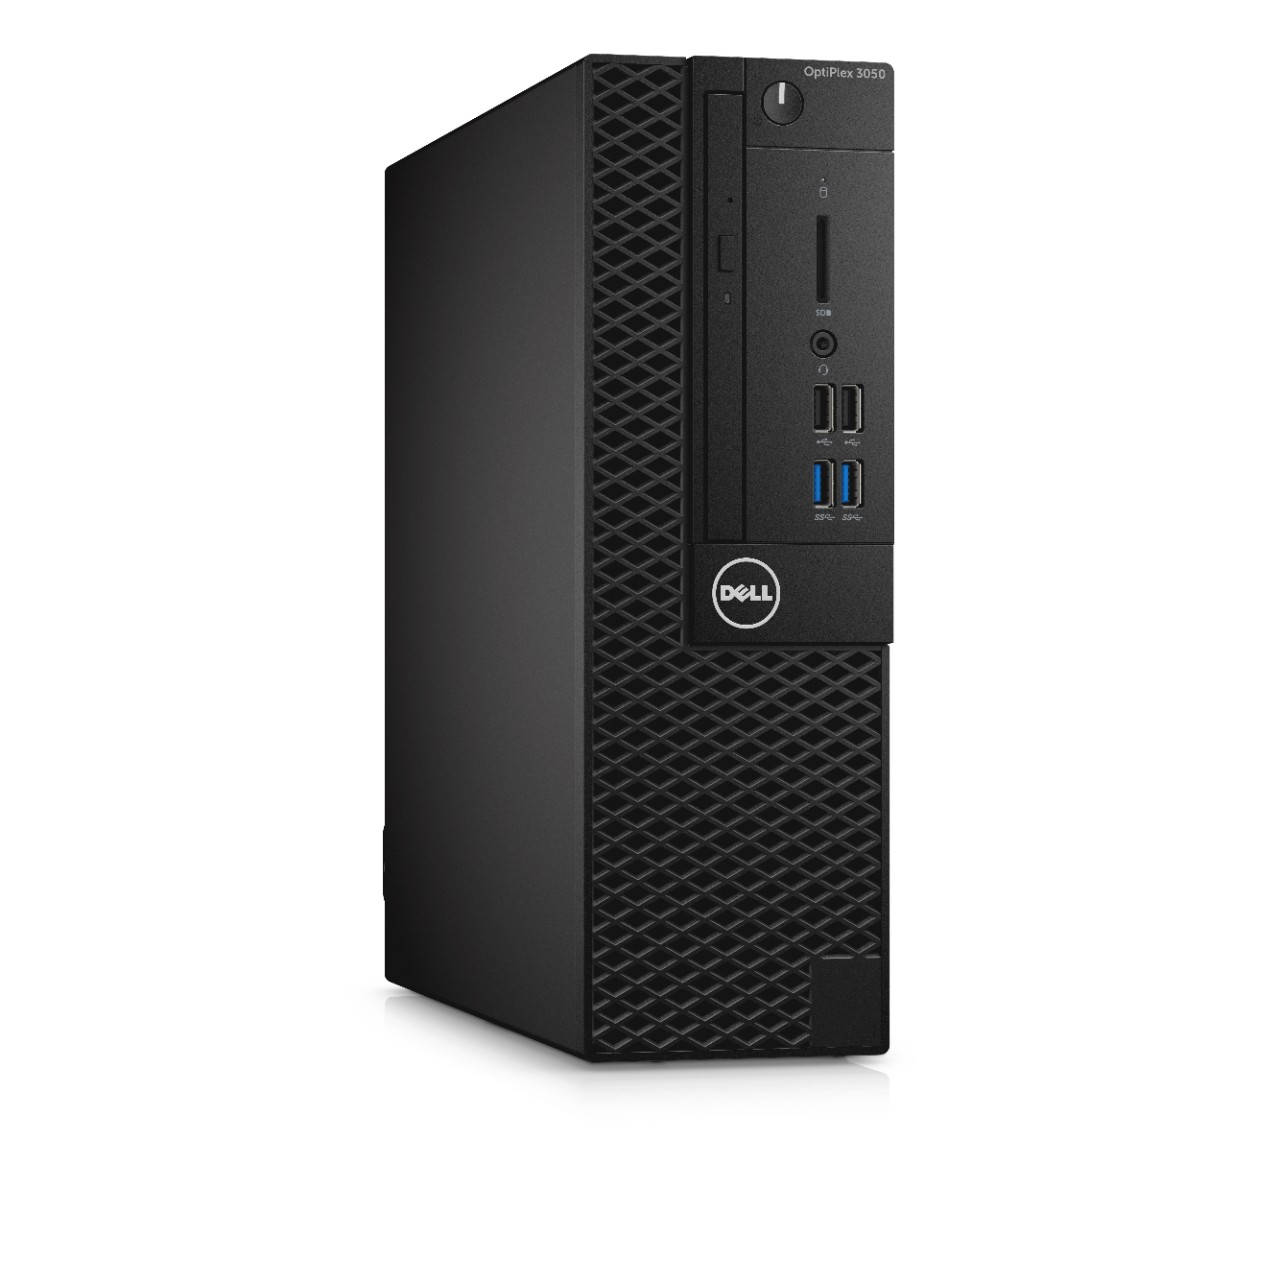 Dell PC Optiplex 3050 SF i5-7500/8G/1TB/DP/HDMI/DVD RW/W10P/3RNBD/Čern